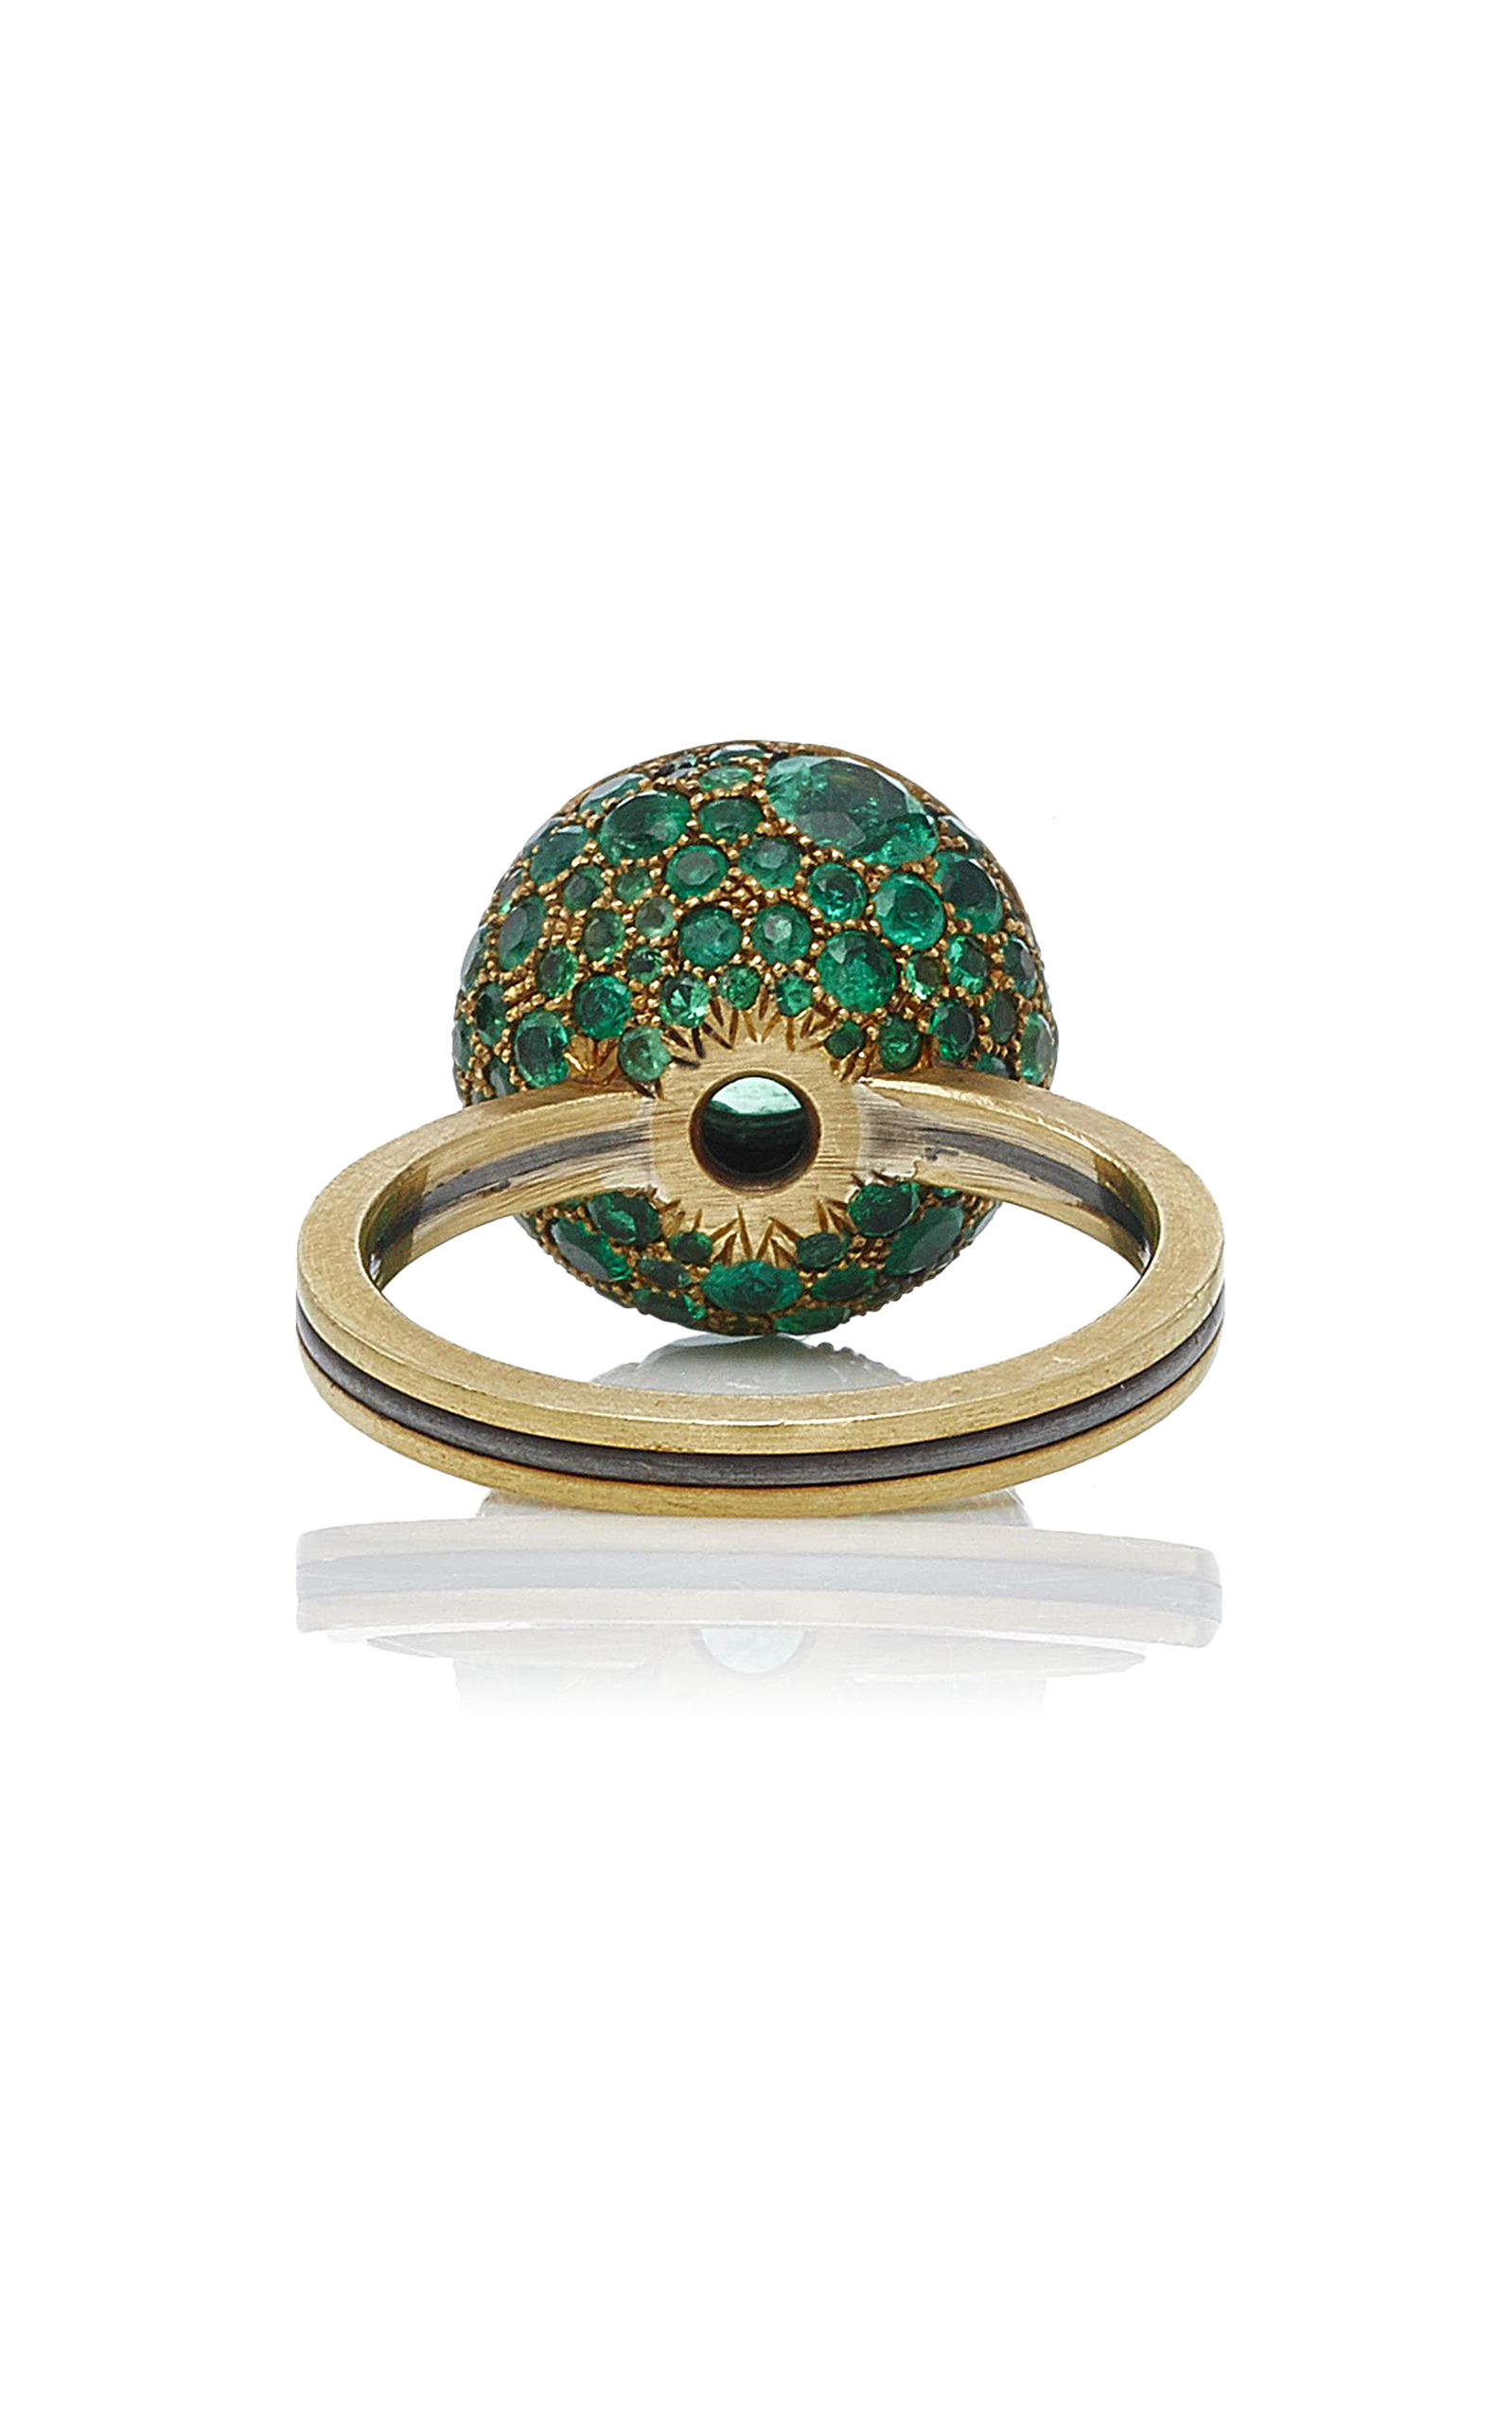 emeral emerald green large of rings bayco kind loading moda operandi by a diamond ring one